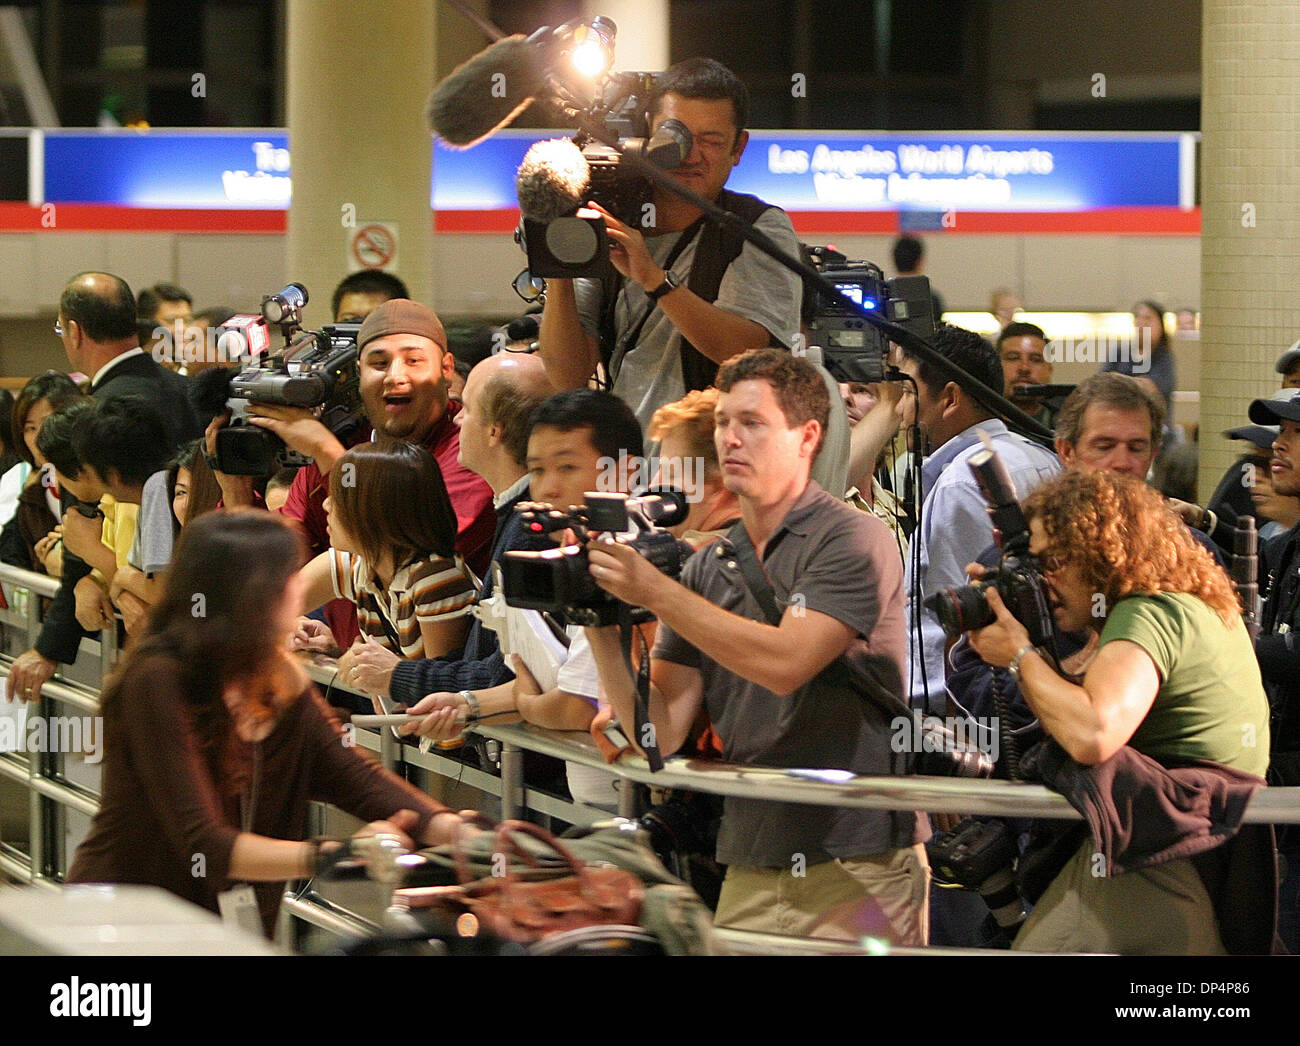 Aug 20, 2006; Los Angeles, CA, USA; Members of the news media gather at the arrival area of Los Angeles International Airport to interview passengers arriving from the same flight with John Mark Karr, the suspect in the killing of 6-year-old JonBenet Ramsey on Sunday, Aug. 20, 2006. Karr, the suspect in the killing of 6-year-old JonBenet Ramsey, arrived late Sunday after a 15-hour  - Stock Image